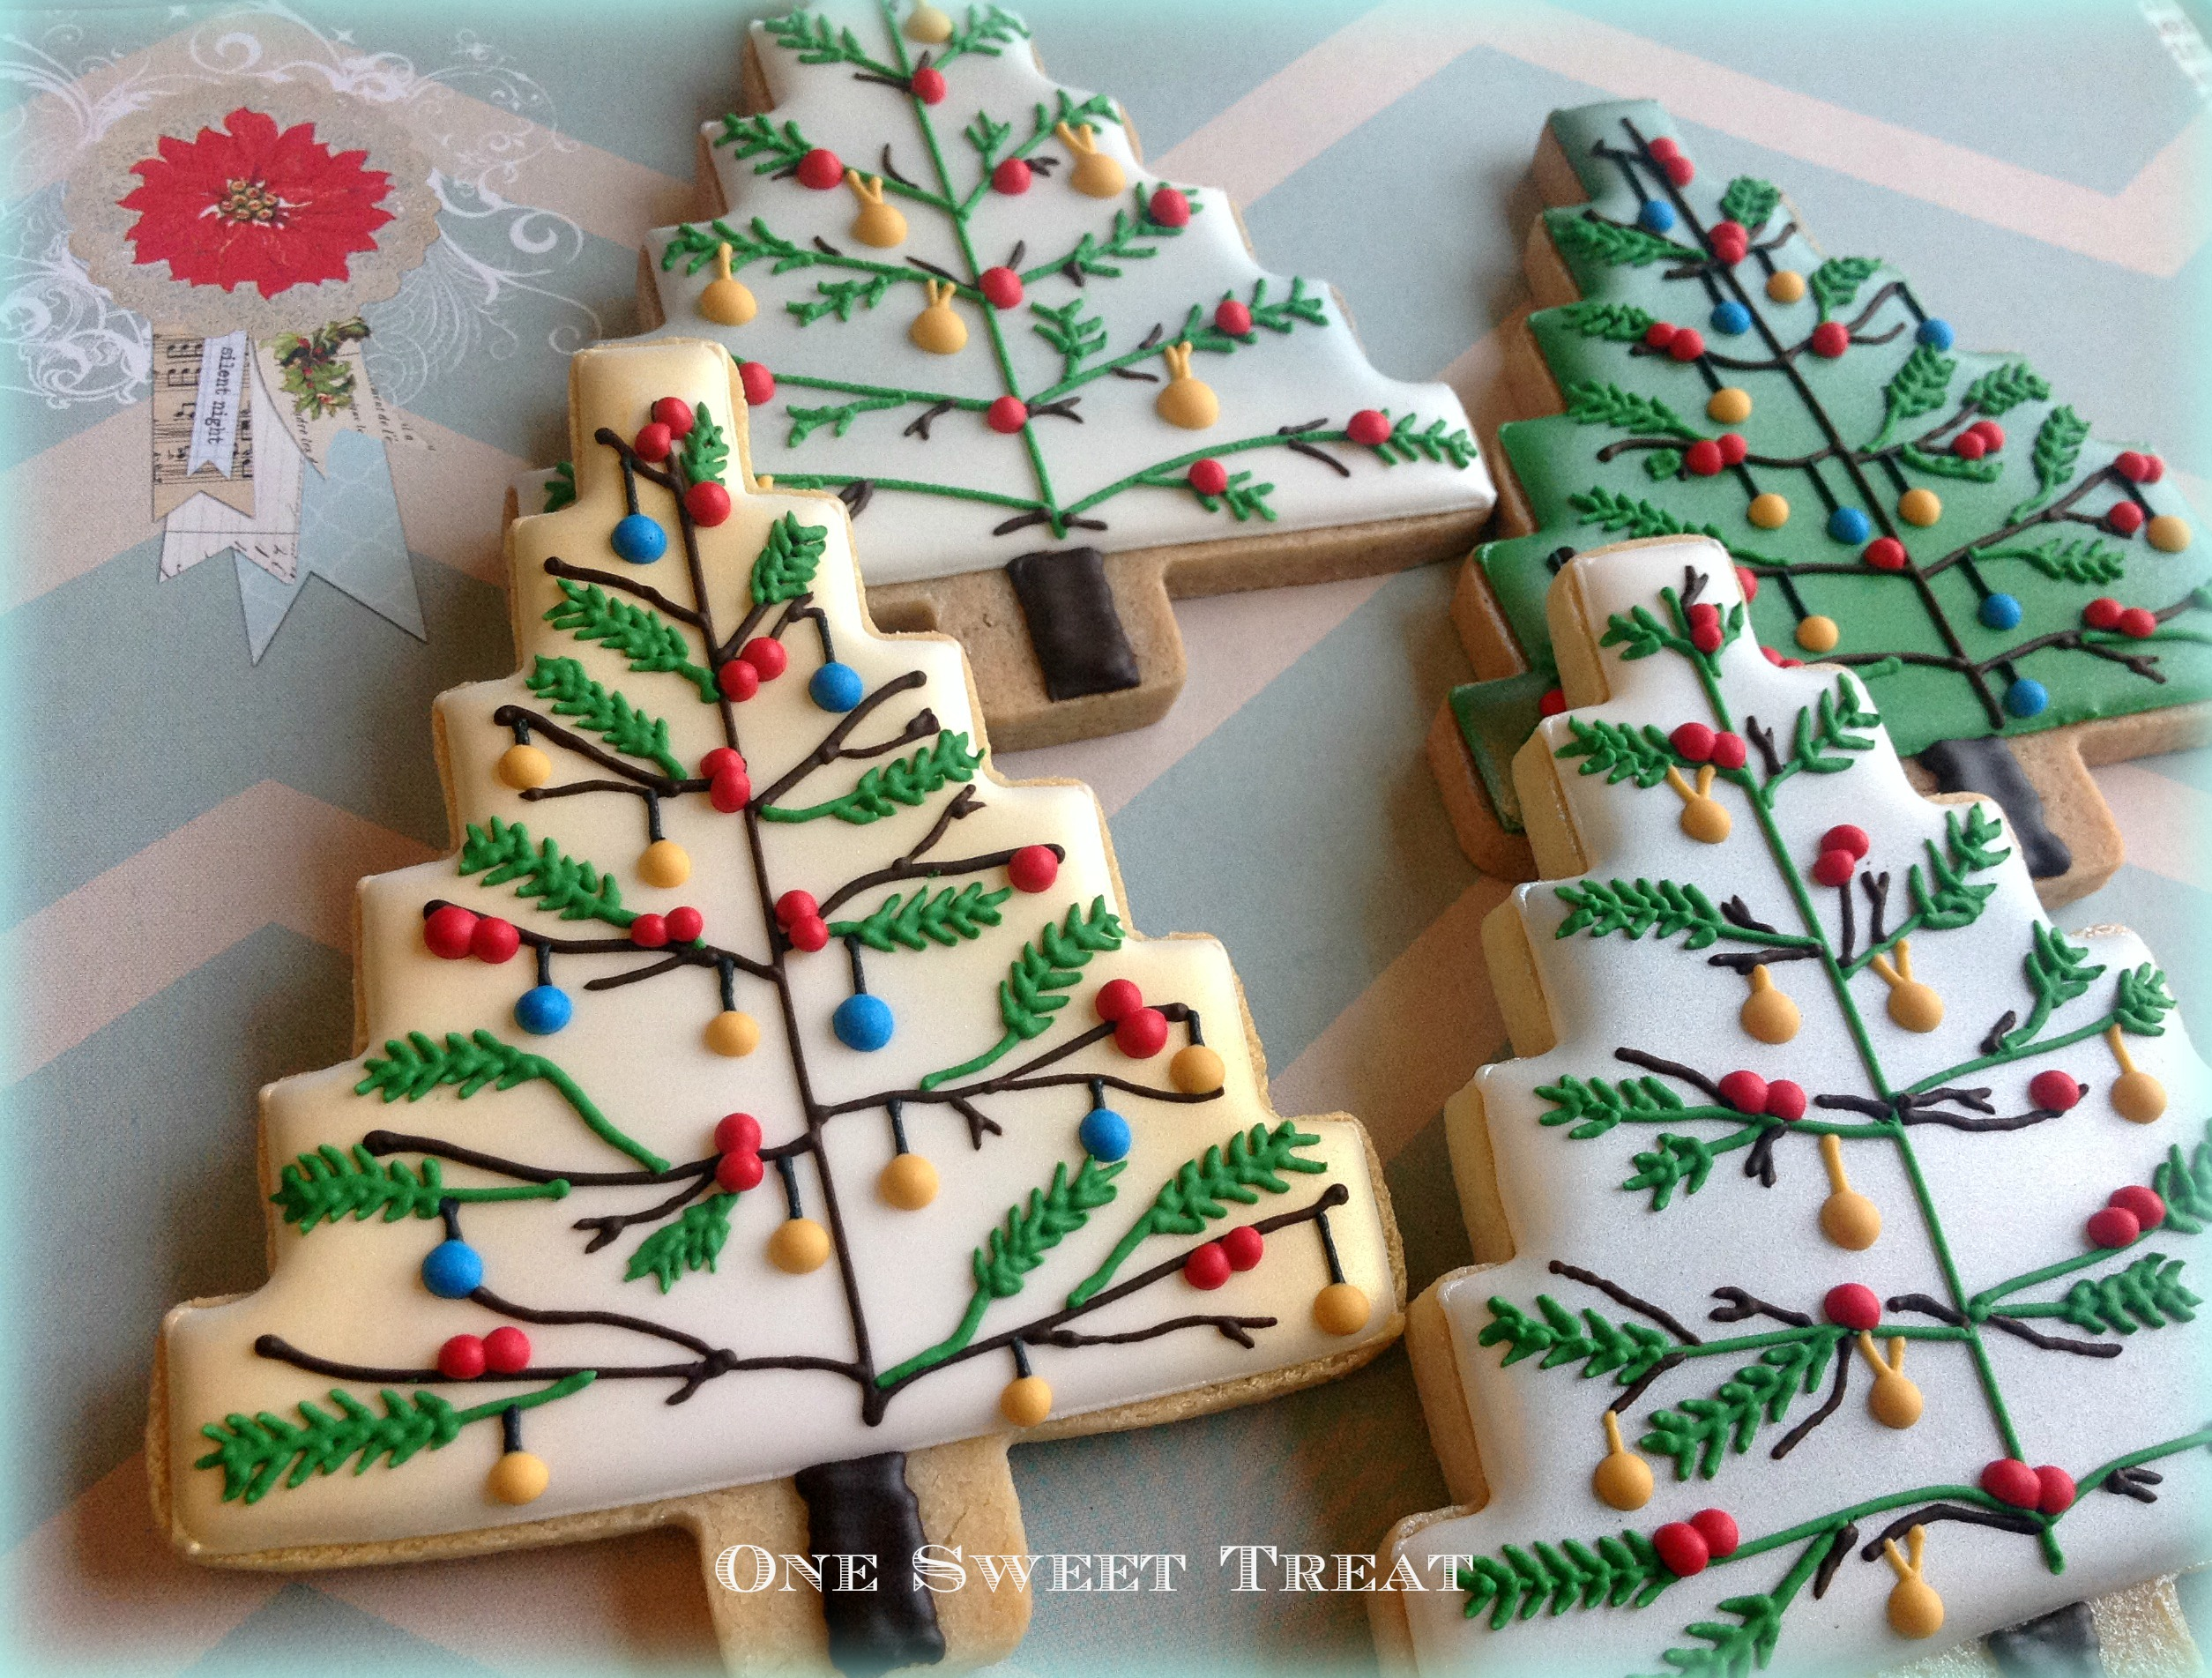 One Sweet Treat Christmas Cookies 2014